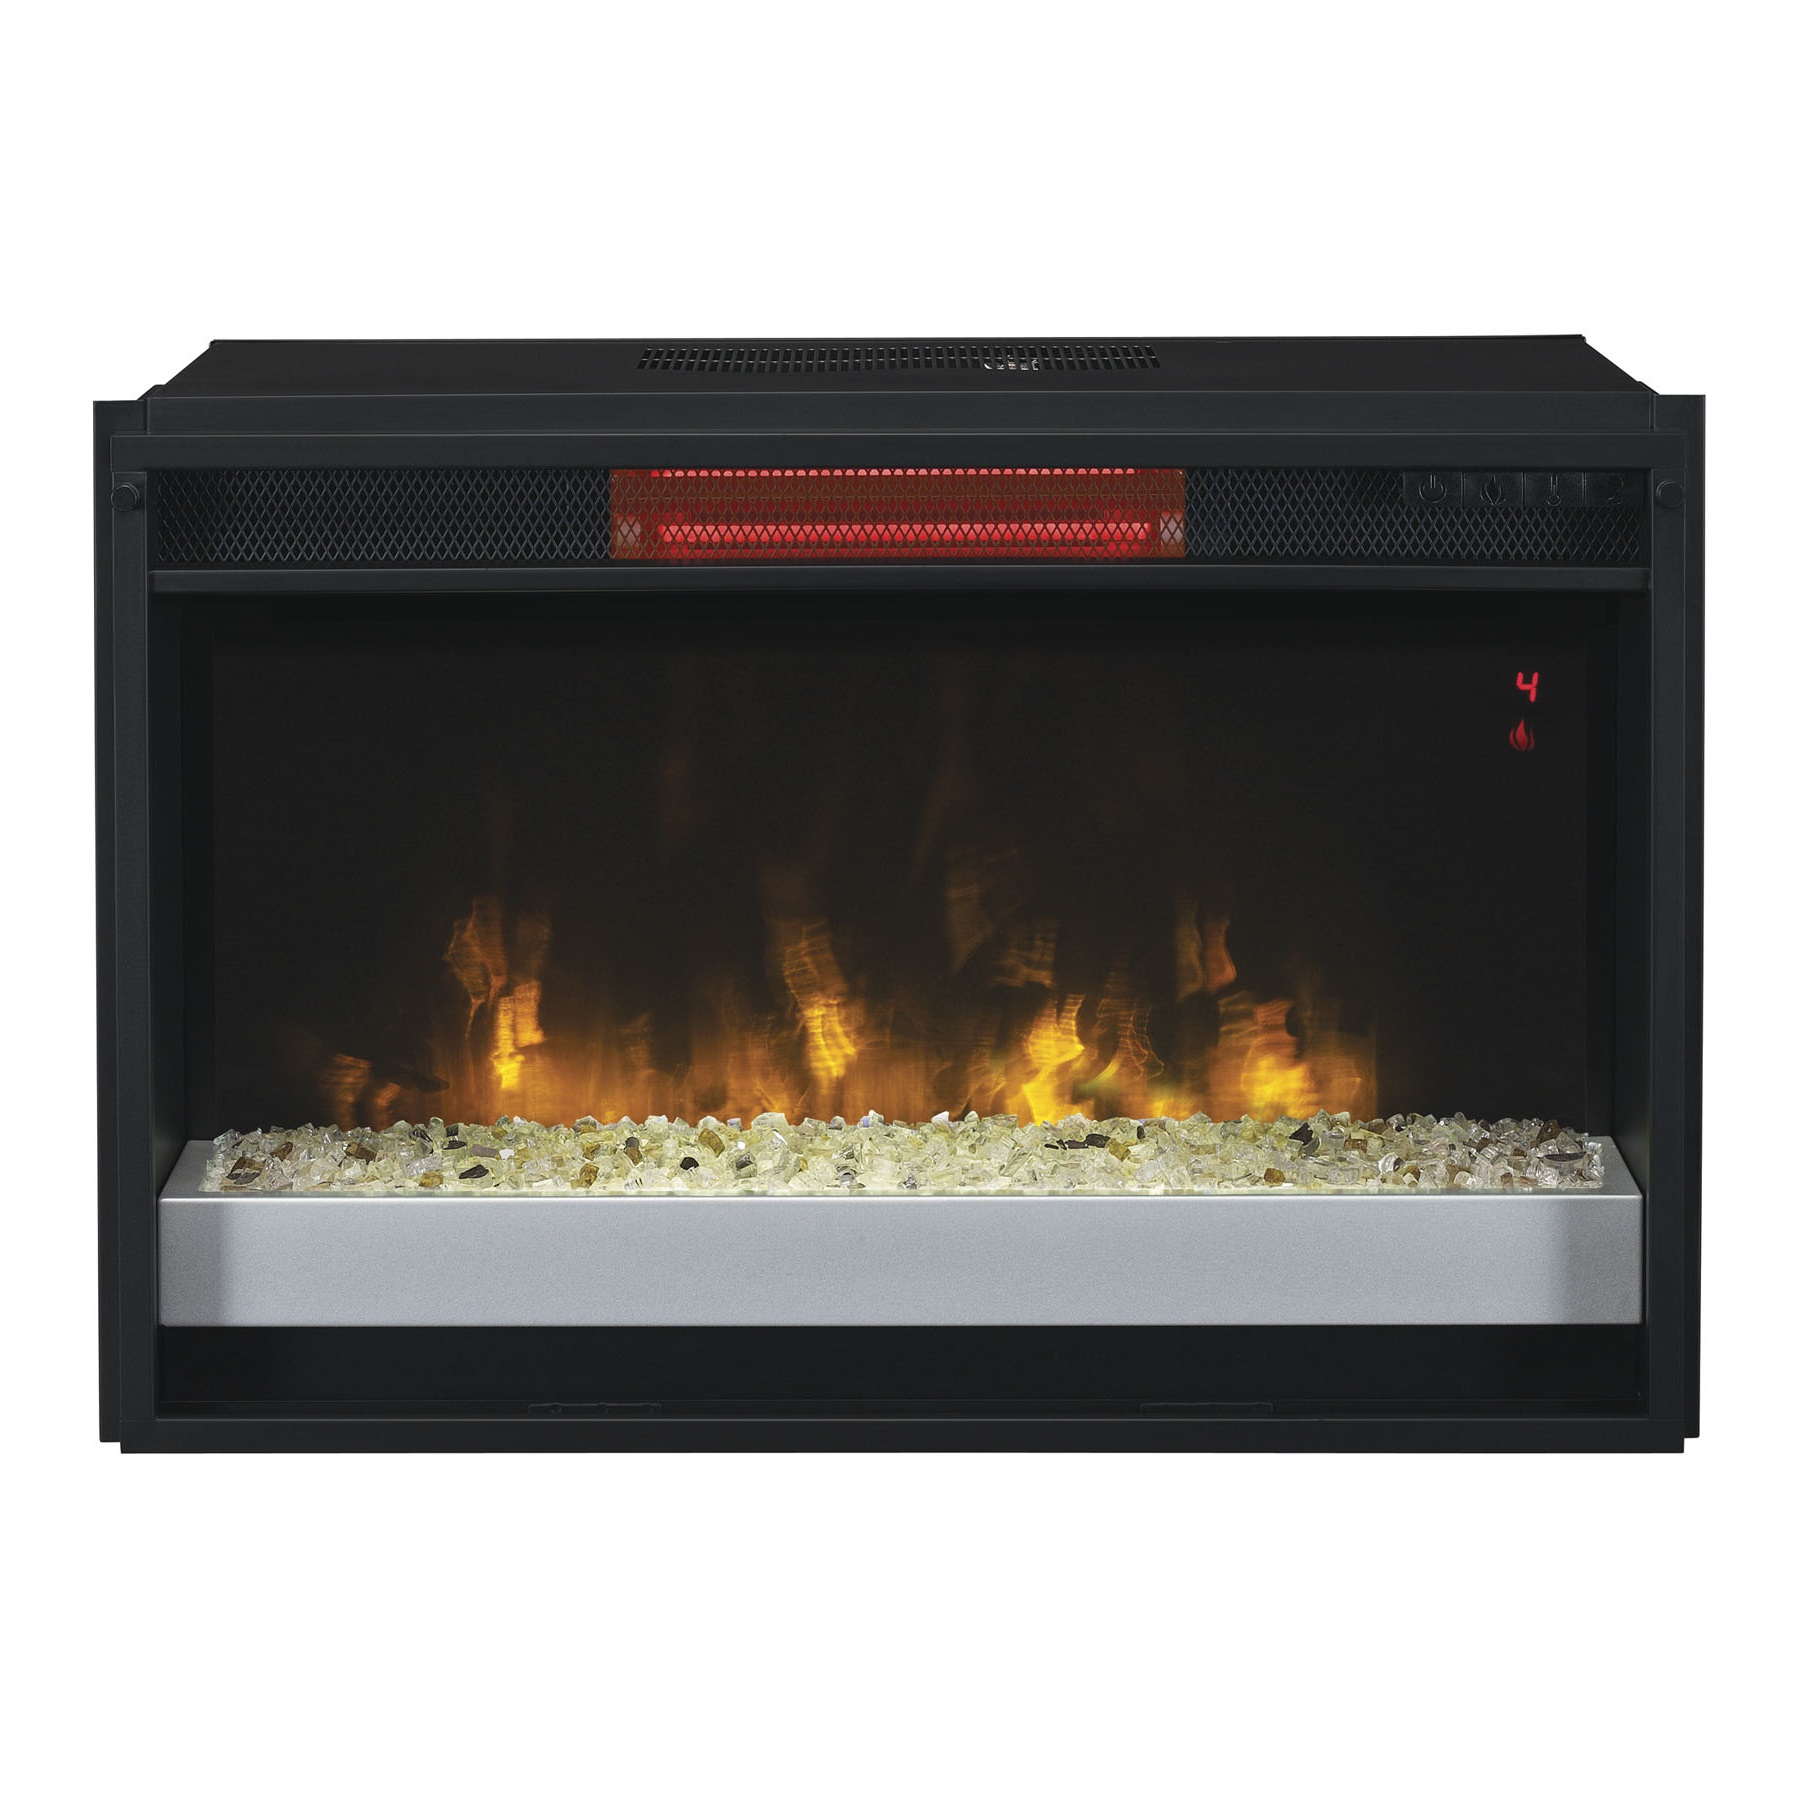 Dimplex Fireplace Remote Control Instructions